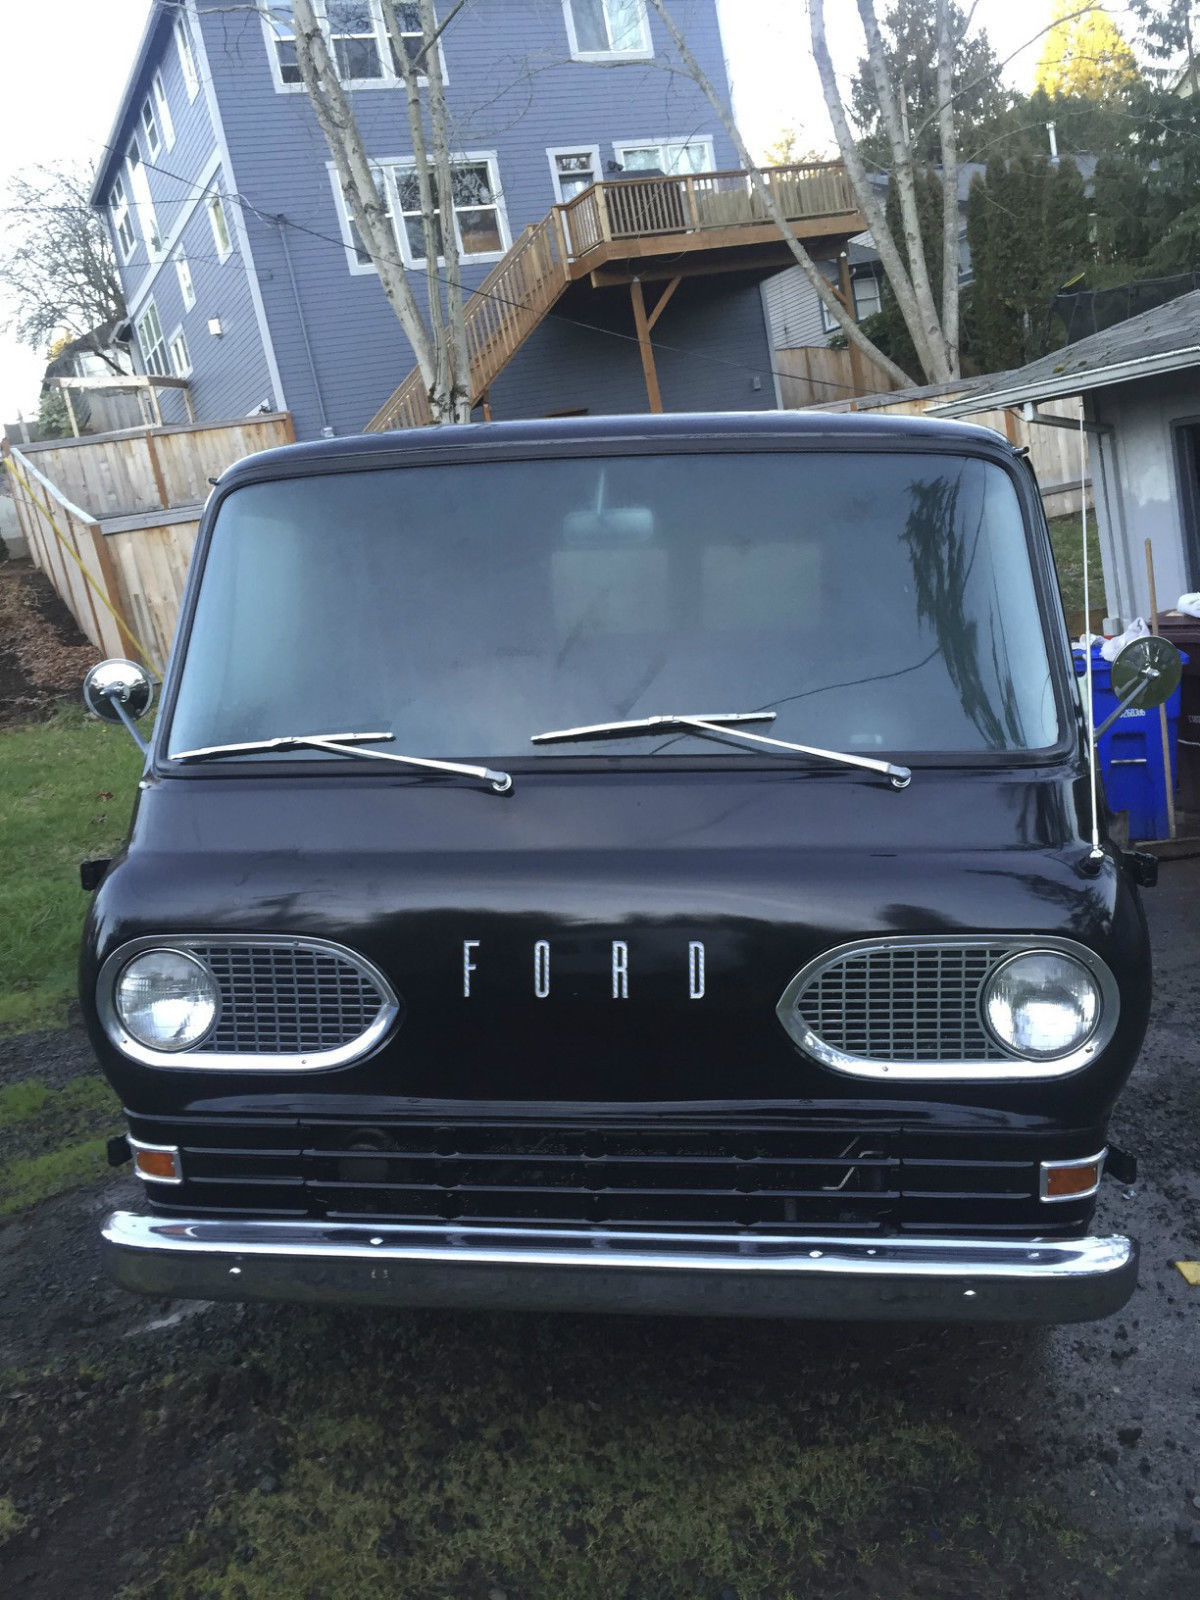 1963 Ford Econoline Van Black Panel Van Ground Up